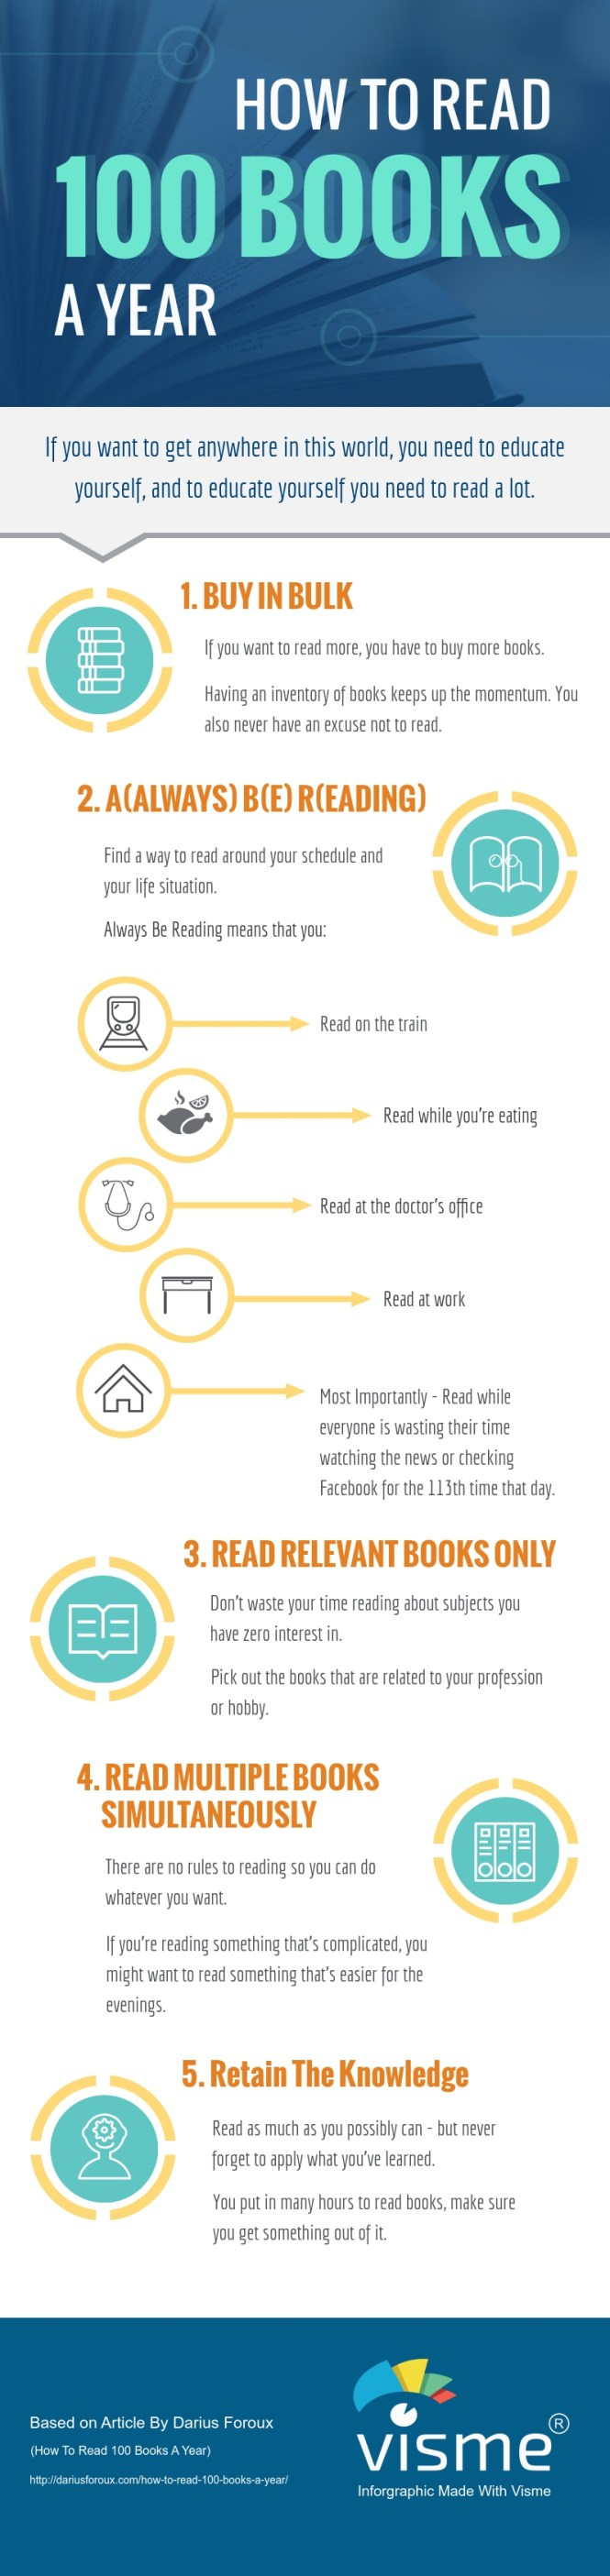 How To Read 100 Books A Year by Darius Foroux